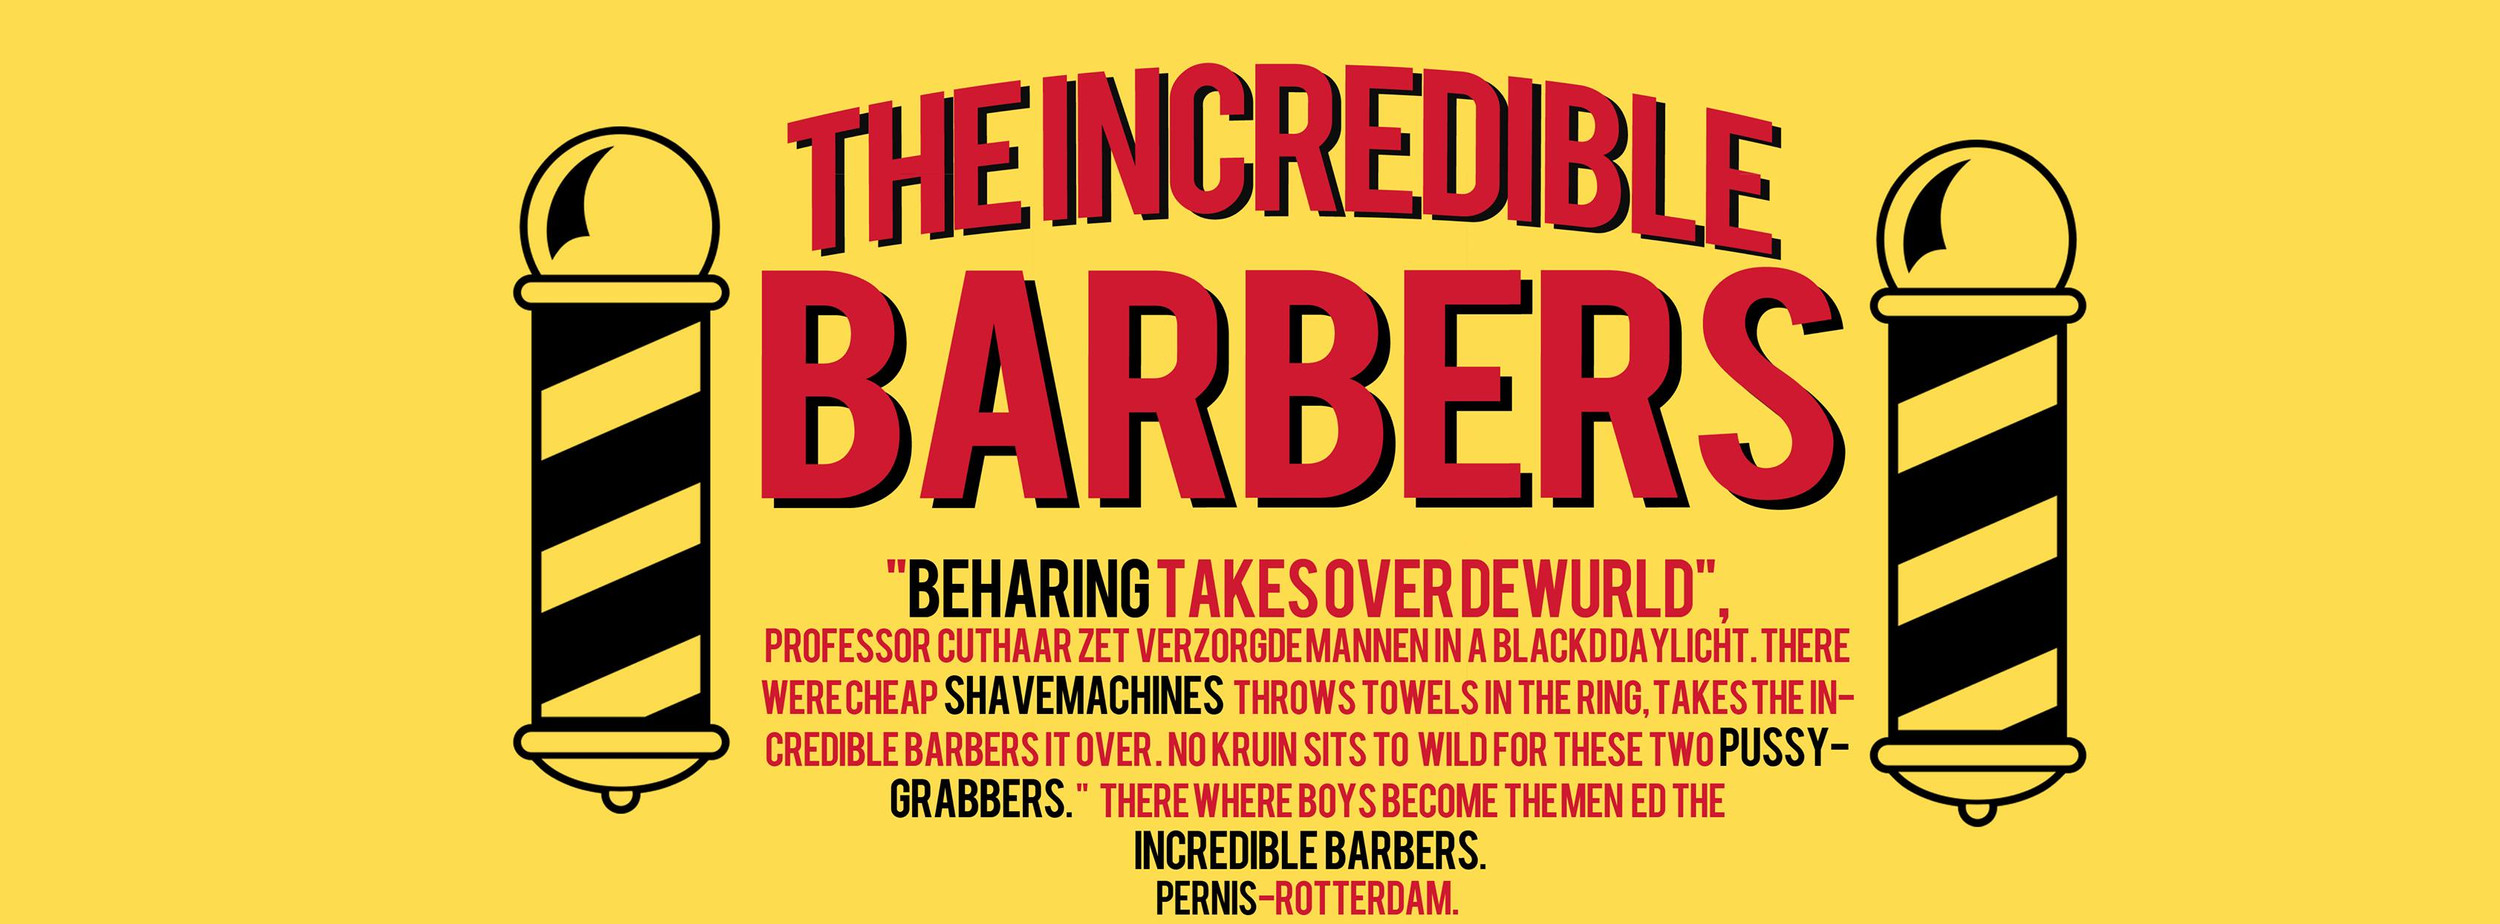 Barbershop | Rotterdam | The Incredible Barbers